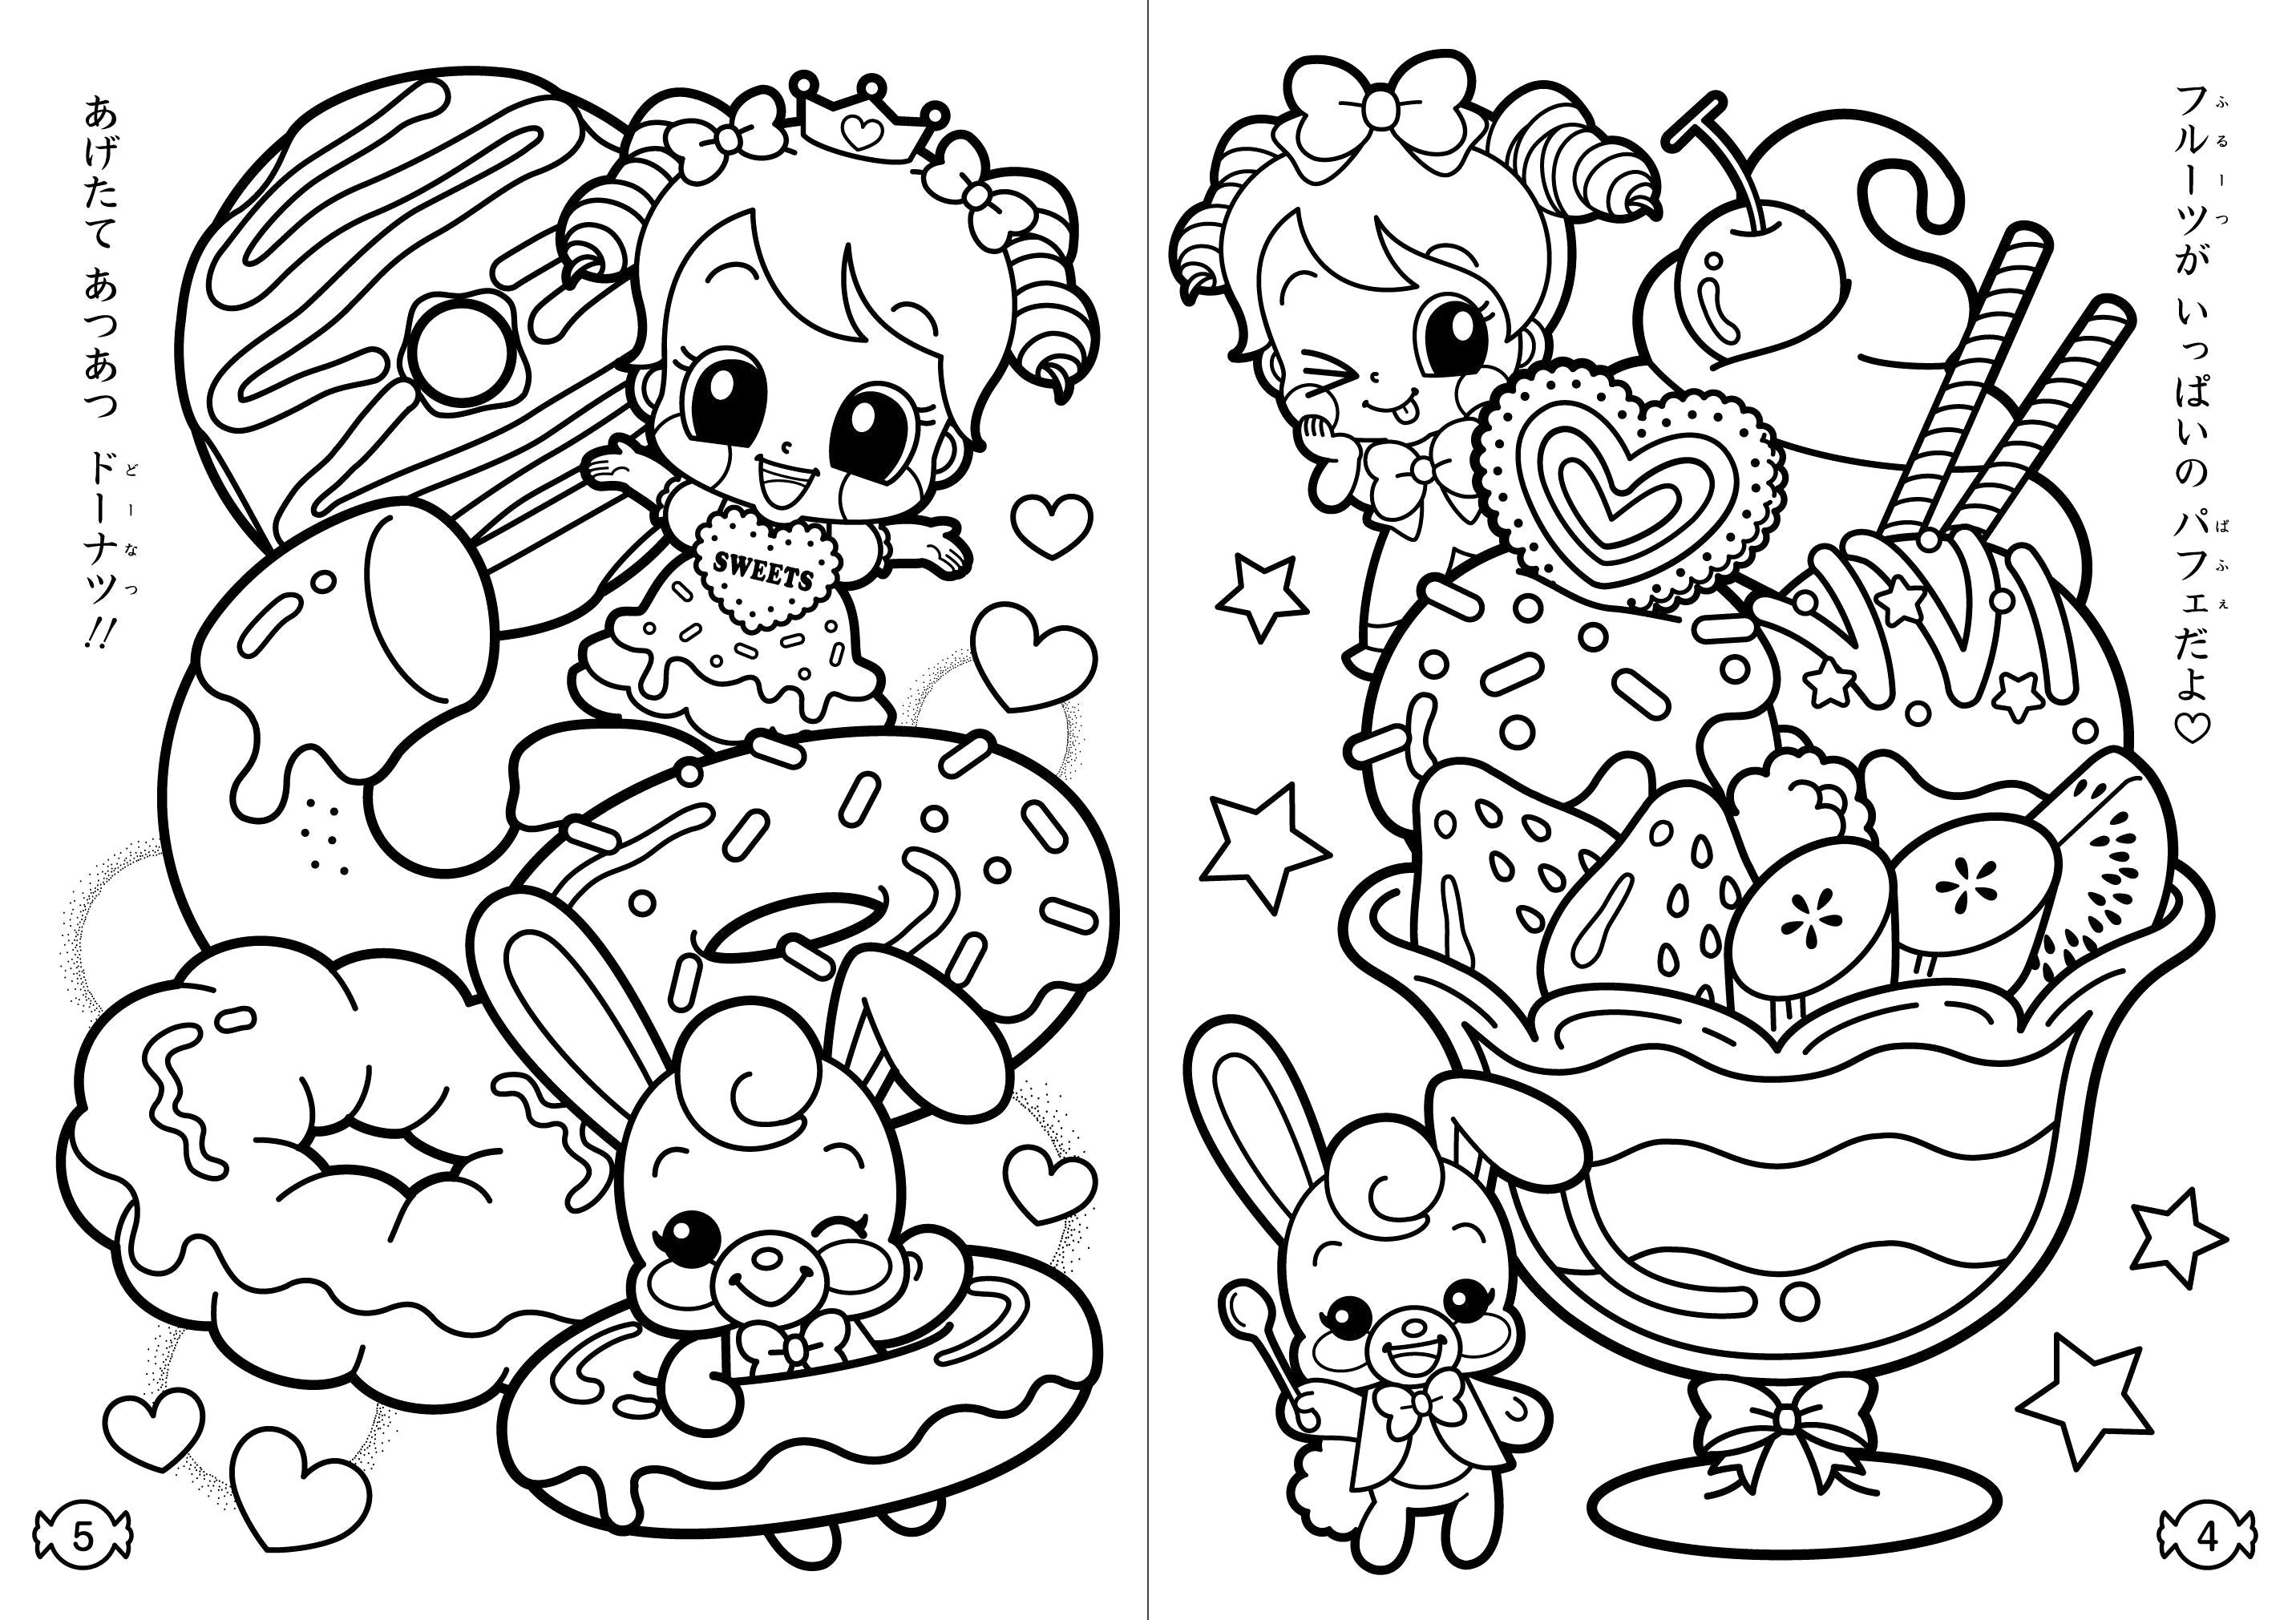 Coloring Pages Cute Food Fresh Kawaii Mr Dong 7619d8a2e3 New Of Unicorn Coloring Pages Animal Coloring Pages Cute Coloring Pages